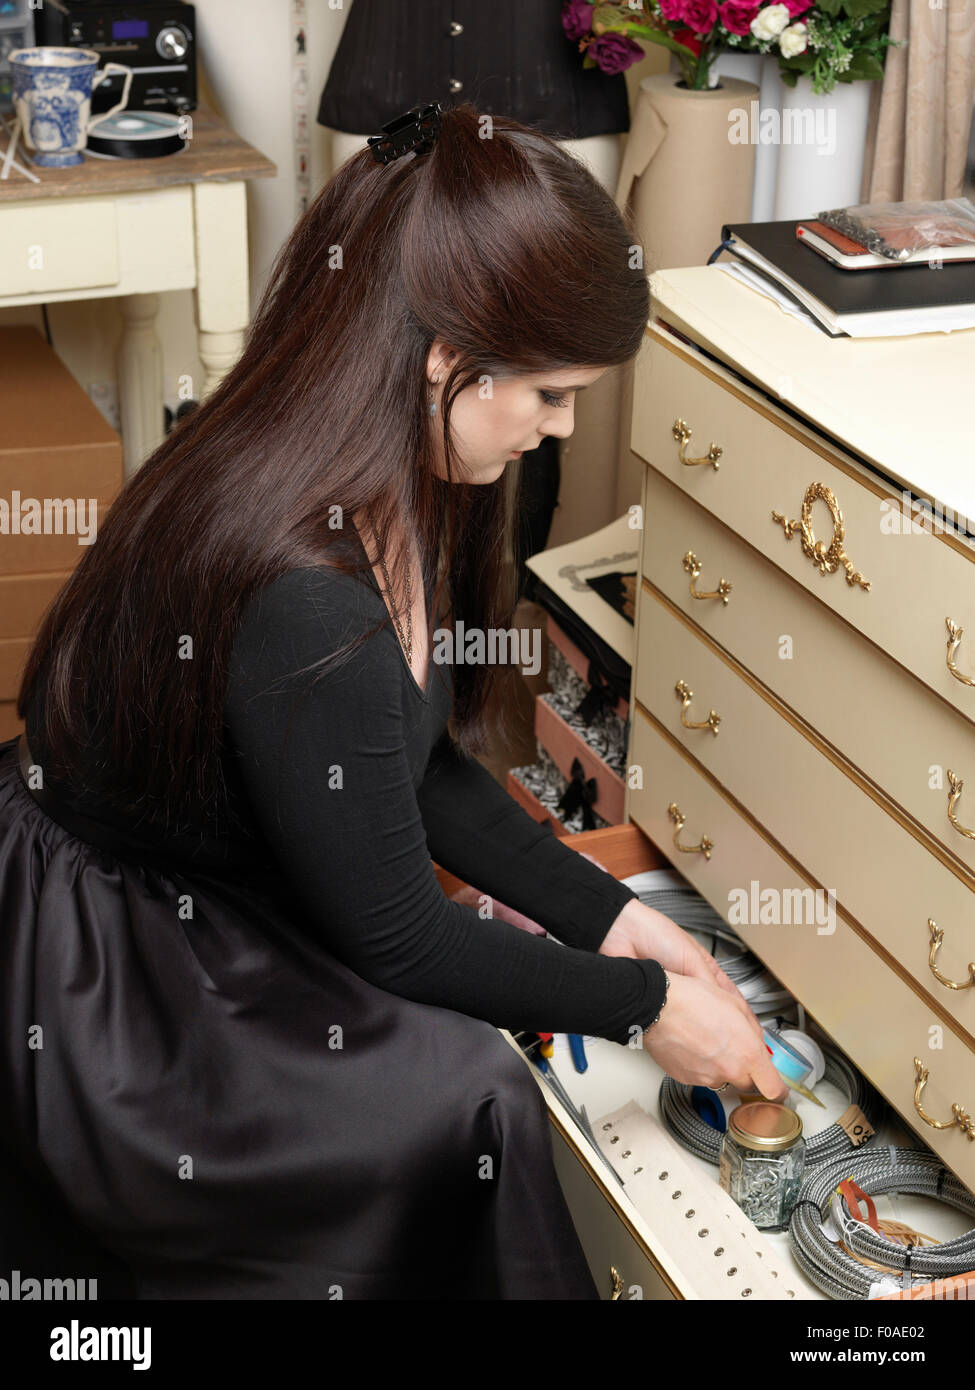 Corset maker storing tools in drawer - Stock Image